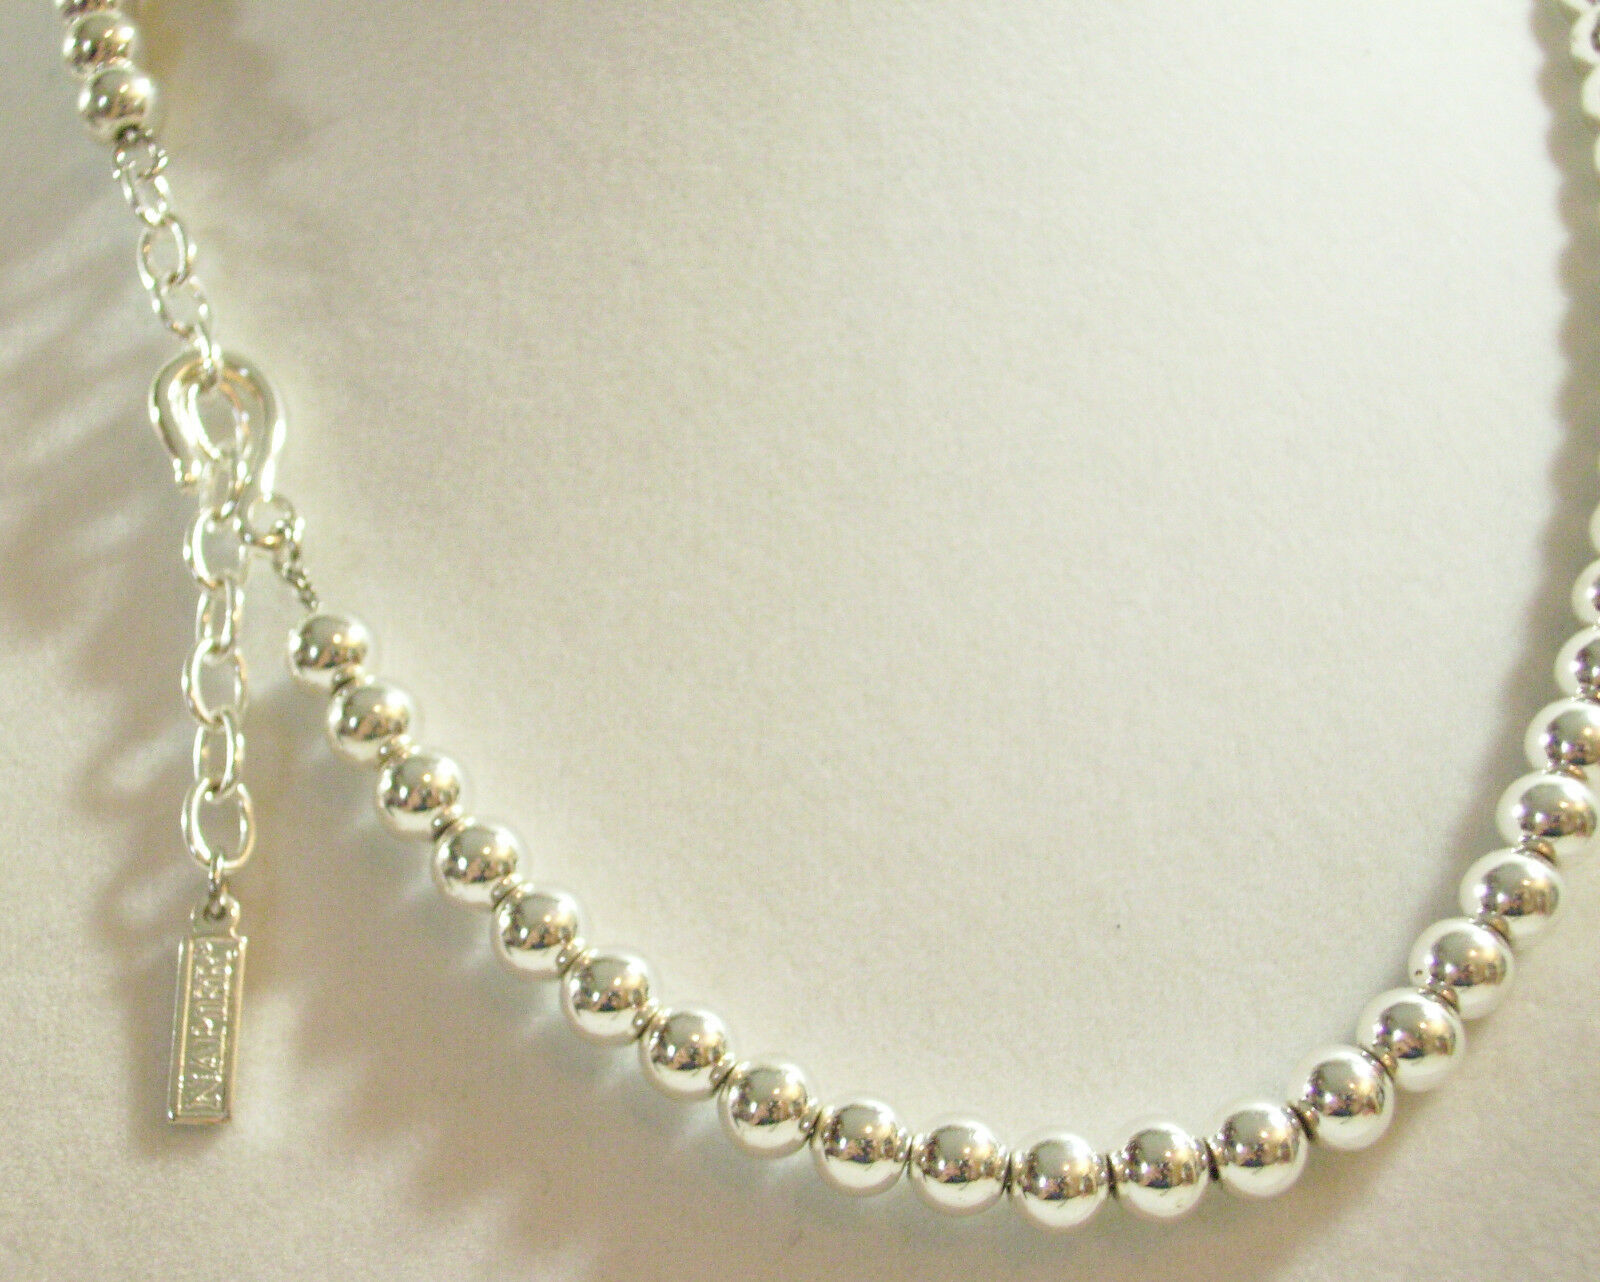 NAPIER Small SILVER Plate BALLS BEADS Chain Choker Necklace Classic Vintage